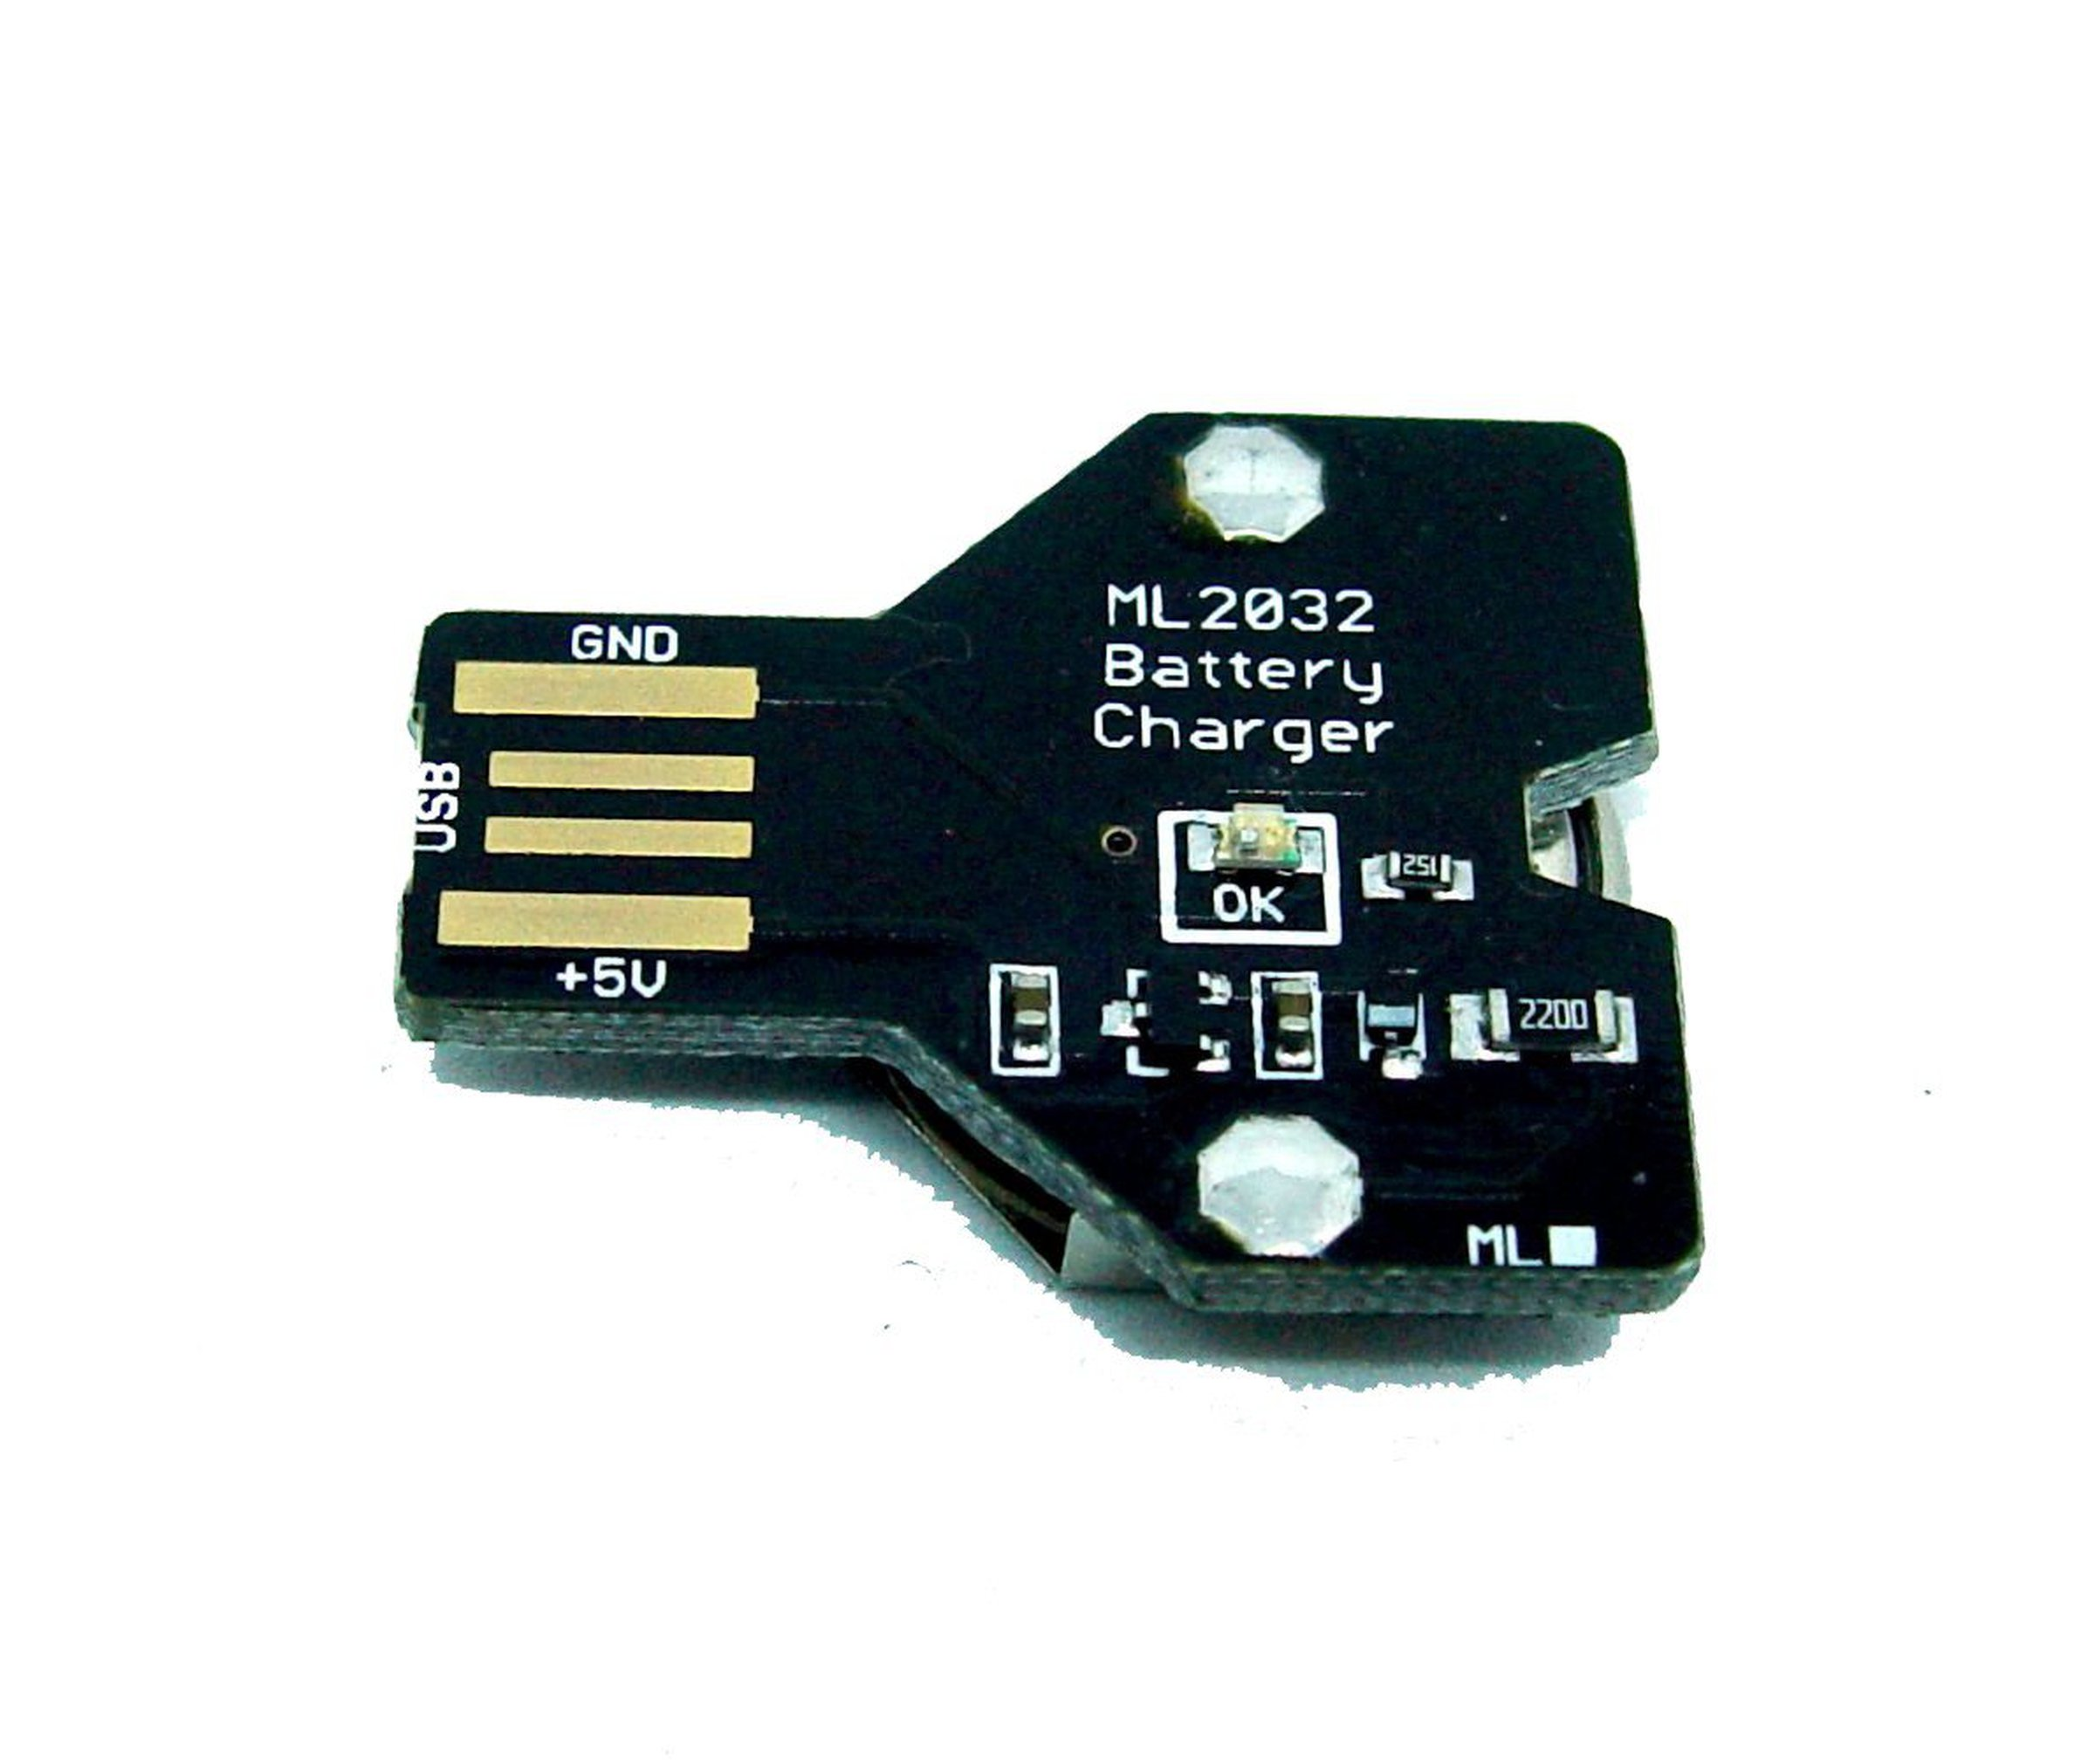 Usb Lithium Coin Cell Battery Charger Ml2032 From Pemi Technology On Simple Nimh Circuit Batterycharger Powersupply 9